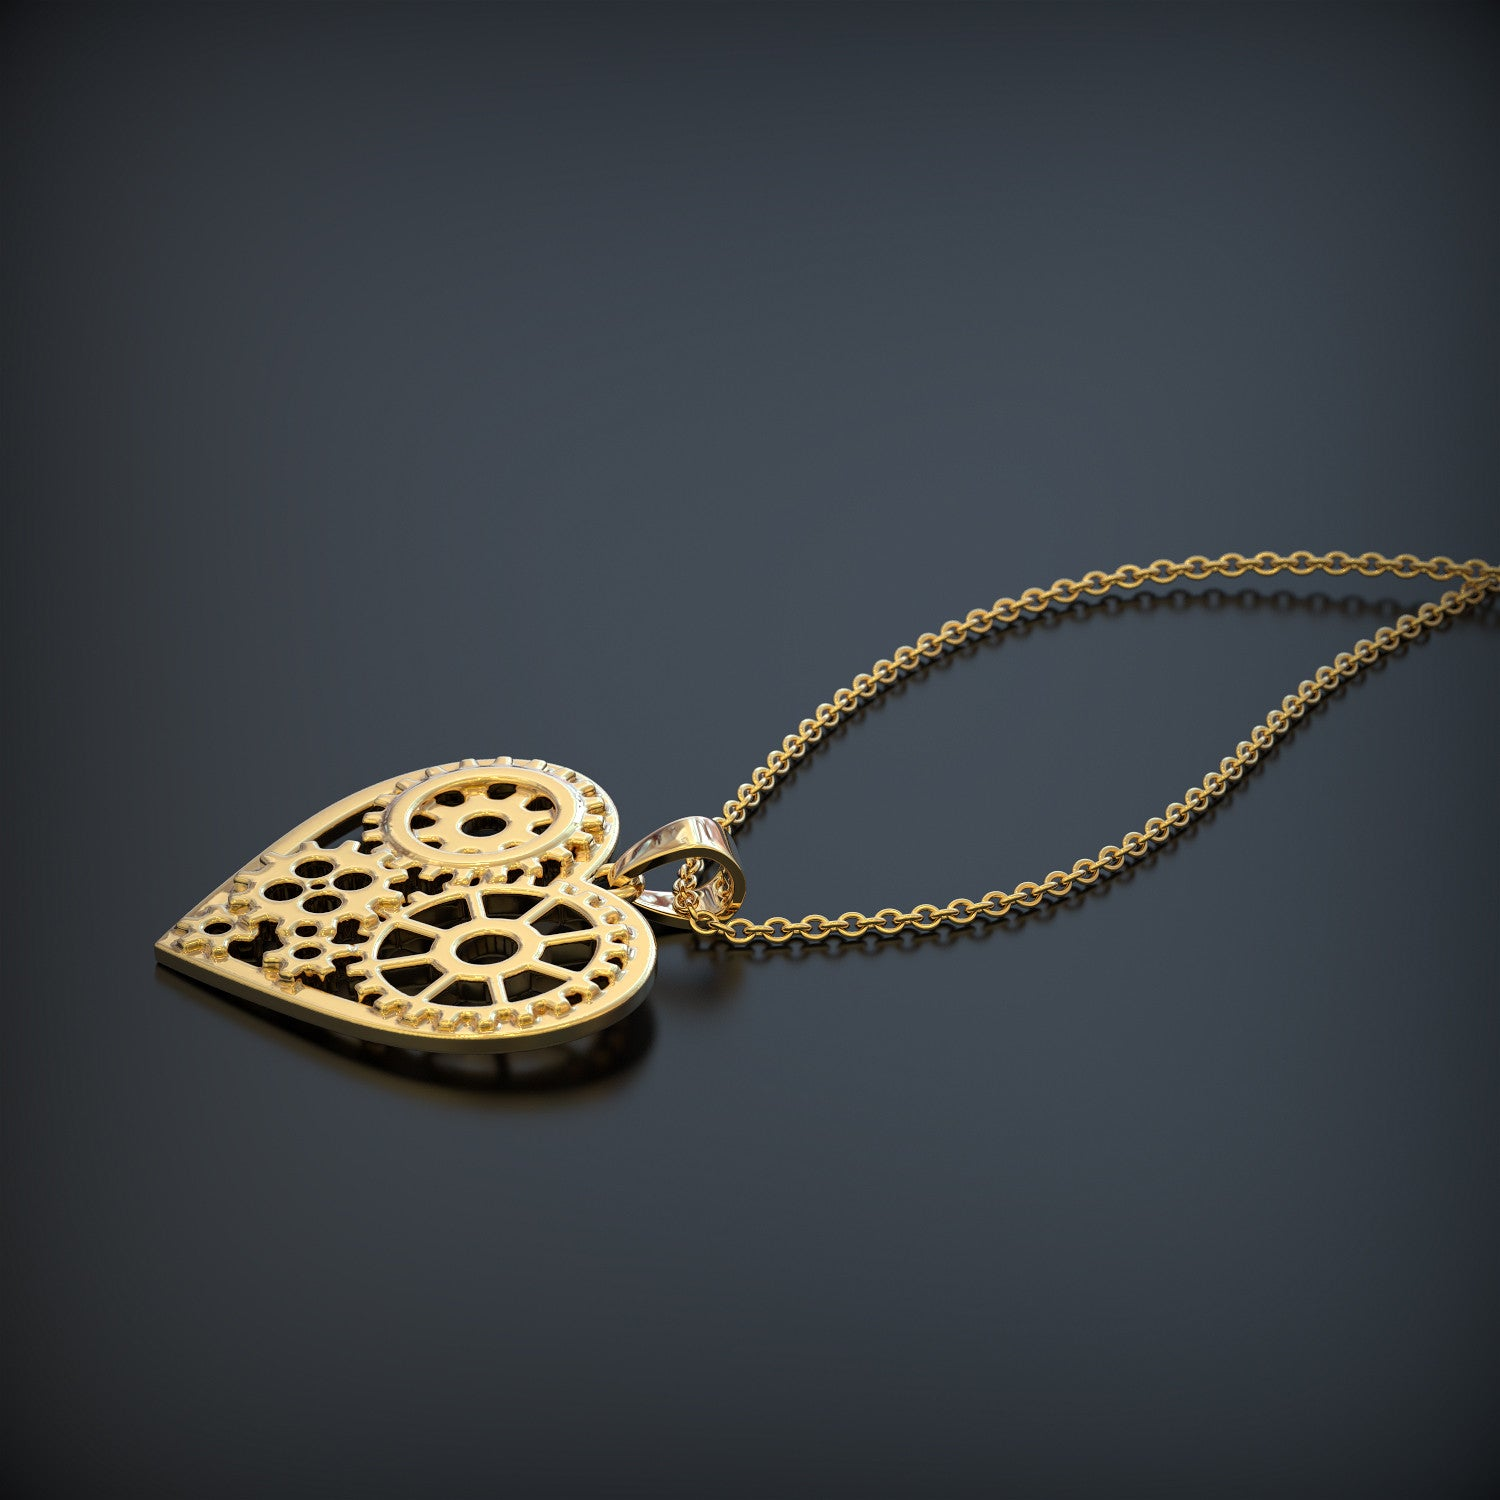 Engineer Necklace